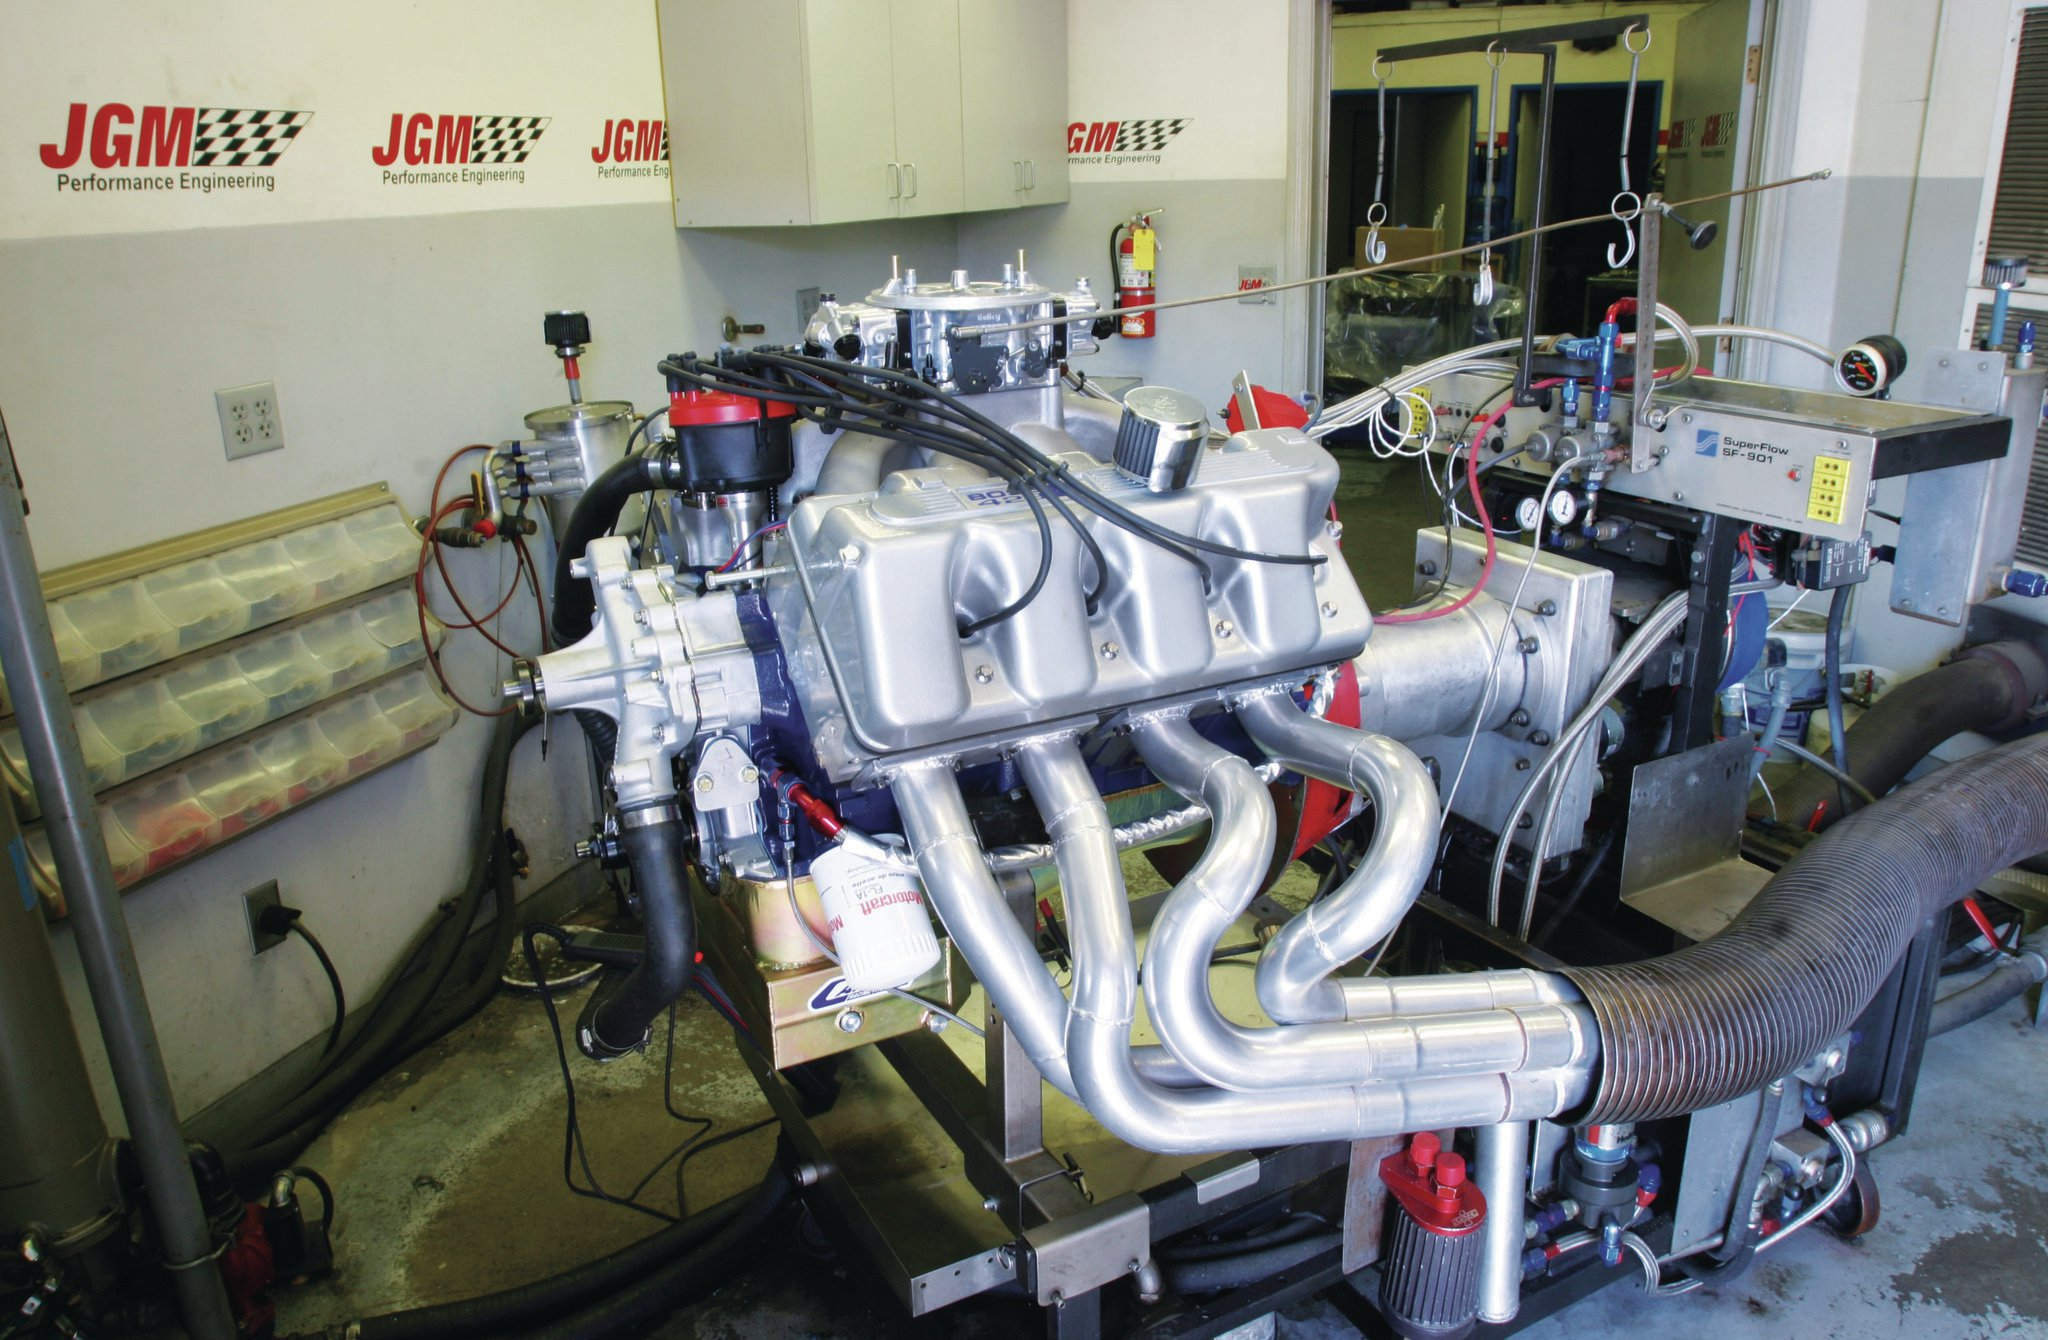 Big power means big airflow, and there aren't too many street heads that will outflow a Kaase Boss 429 cylinder head (JonKaaseRacingEngines.com). With intake flow numbers around 410 cfm and exhaust in the 300-cfm range, a typical 521ci Kaase Boss can make between 850 and 900 hp.